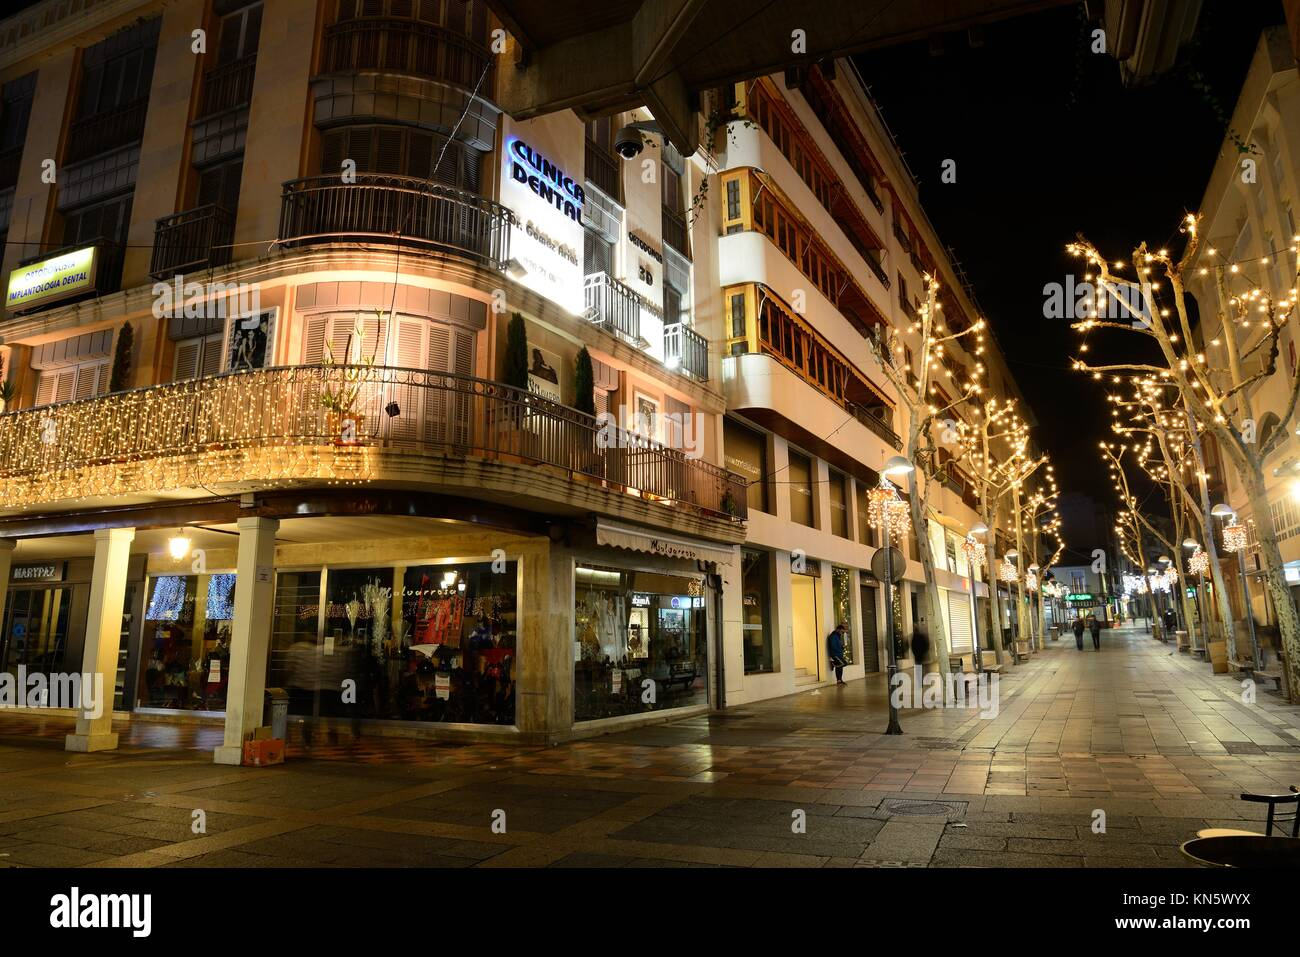 Premises exposing its kind in Christmas season in the city of Ciudad Real, Spain. - Stock Image